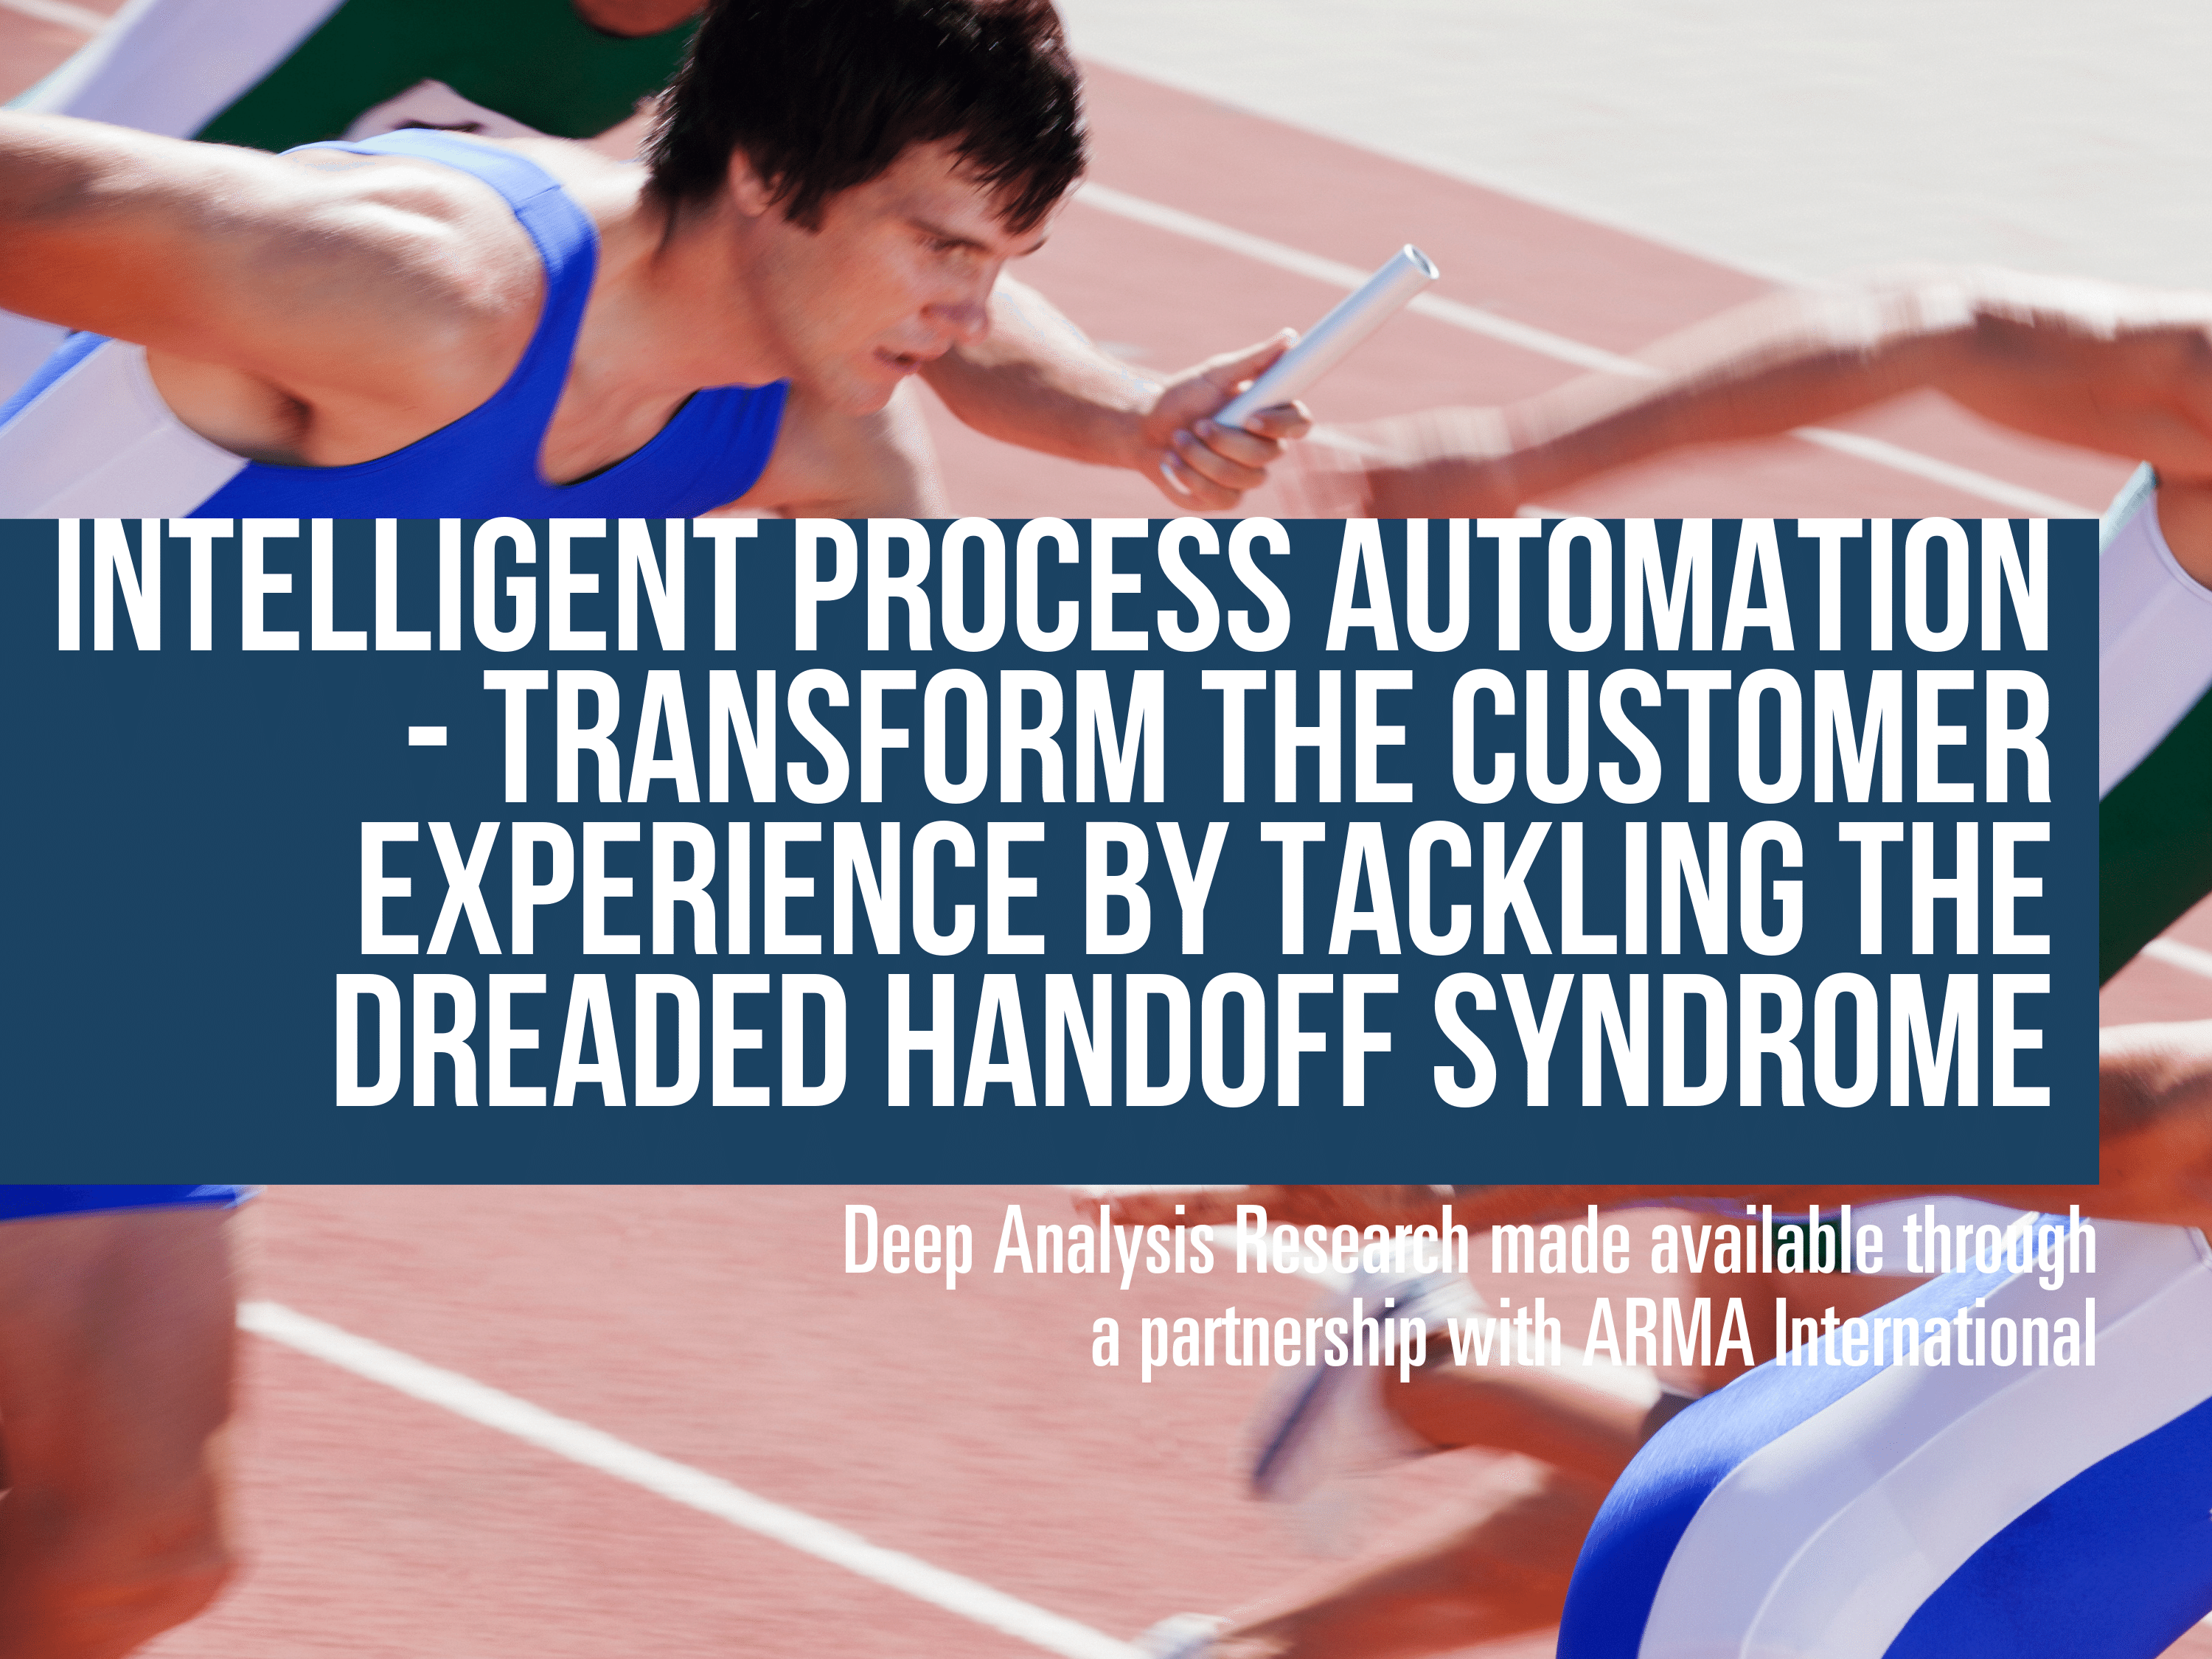 Intelligent Process Automation – Transform the Customer Experience by Tackling the Dreaded Handoff Syndrome